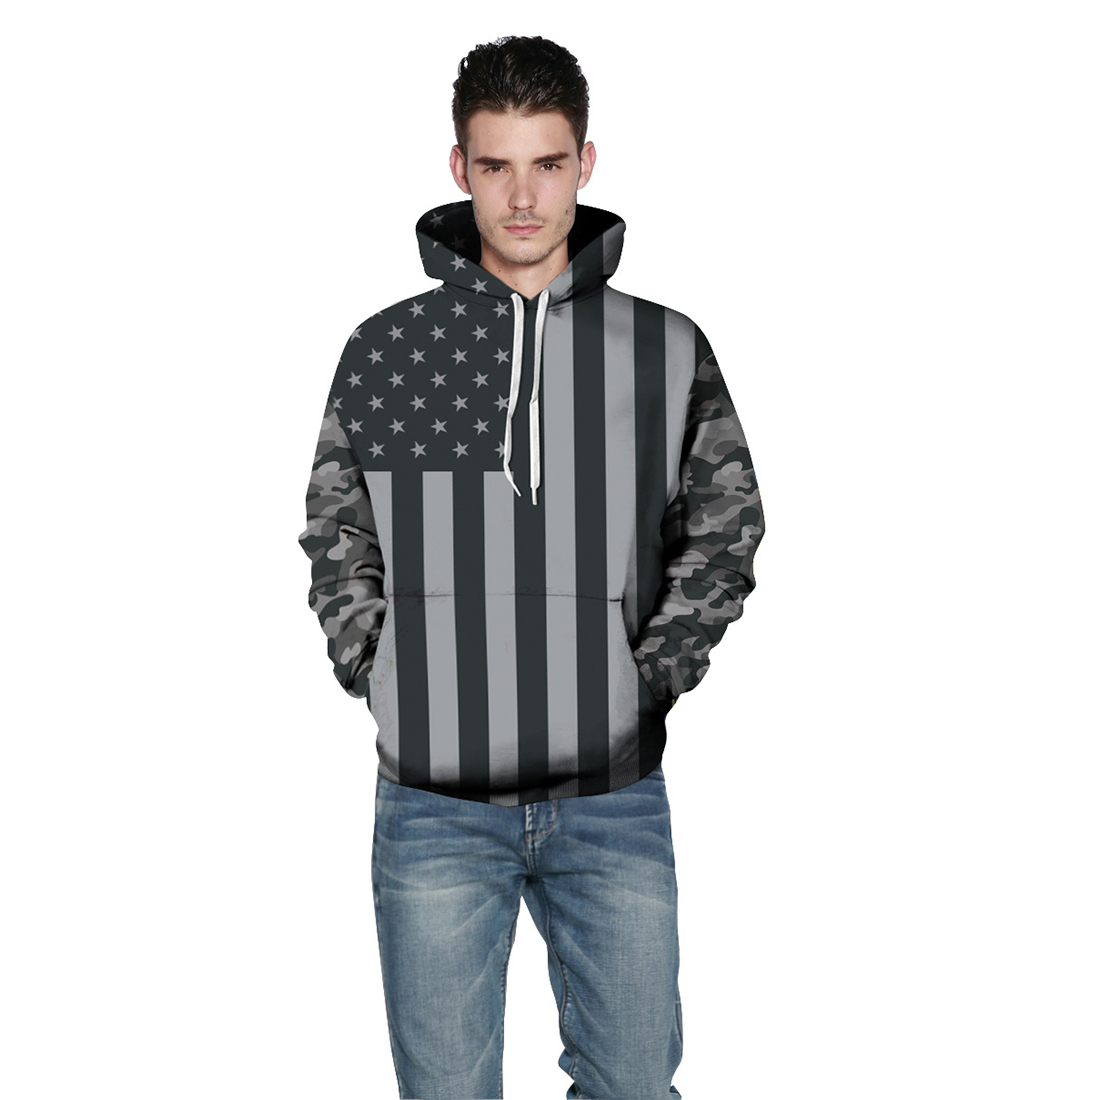 Men/Women New Fashion Hoodies Sweatshirts 3d America Flag Striped Stars Print Hooded Tracksuits Pullover